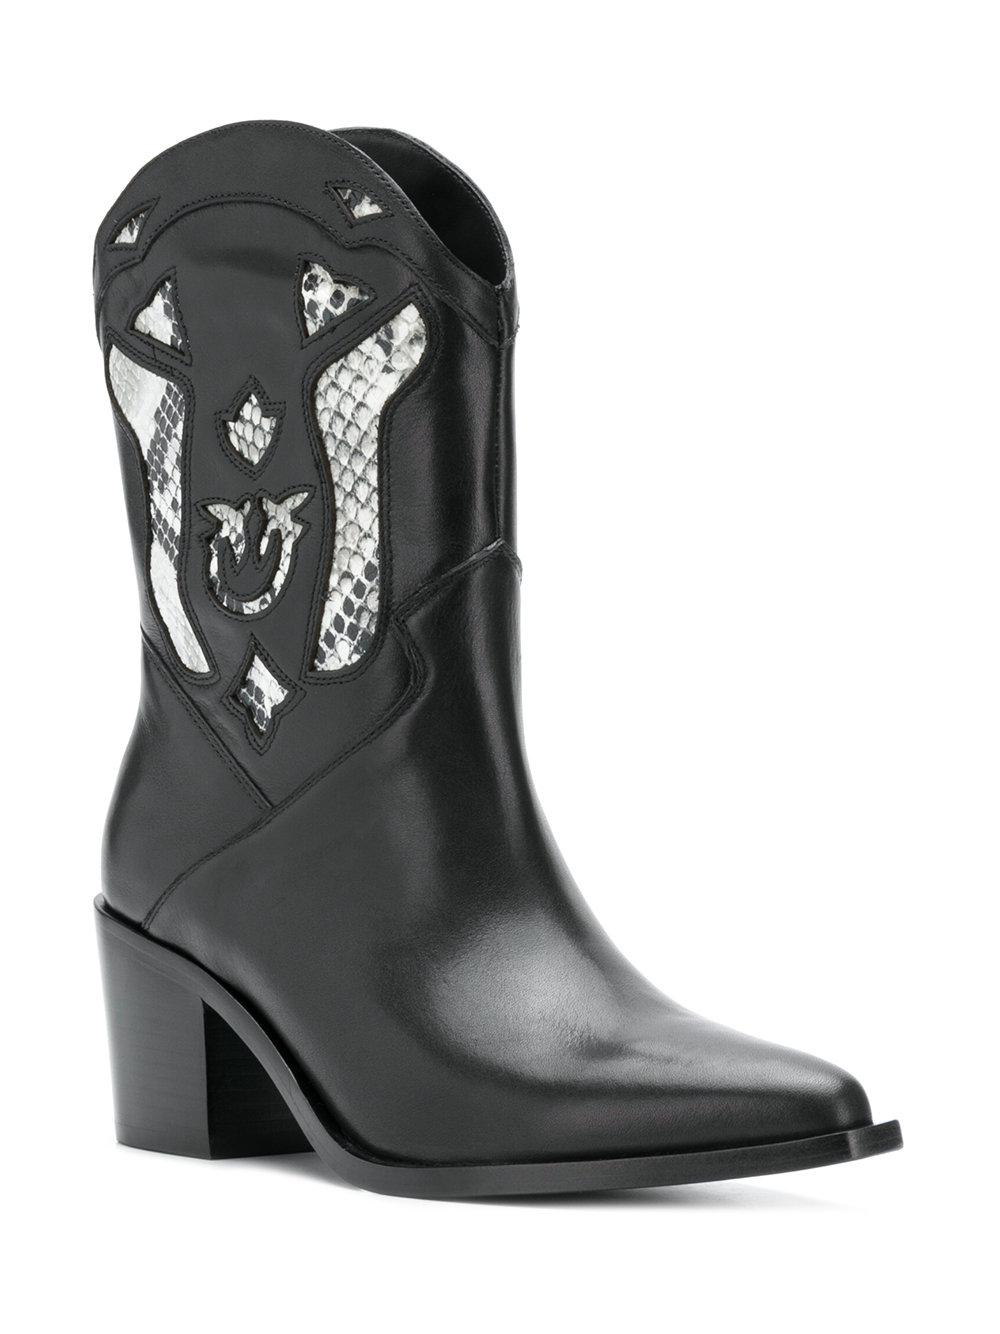 Pinko Leather Cowgirl Ankle Boots in Black